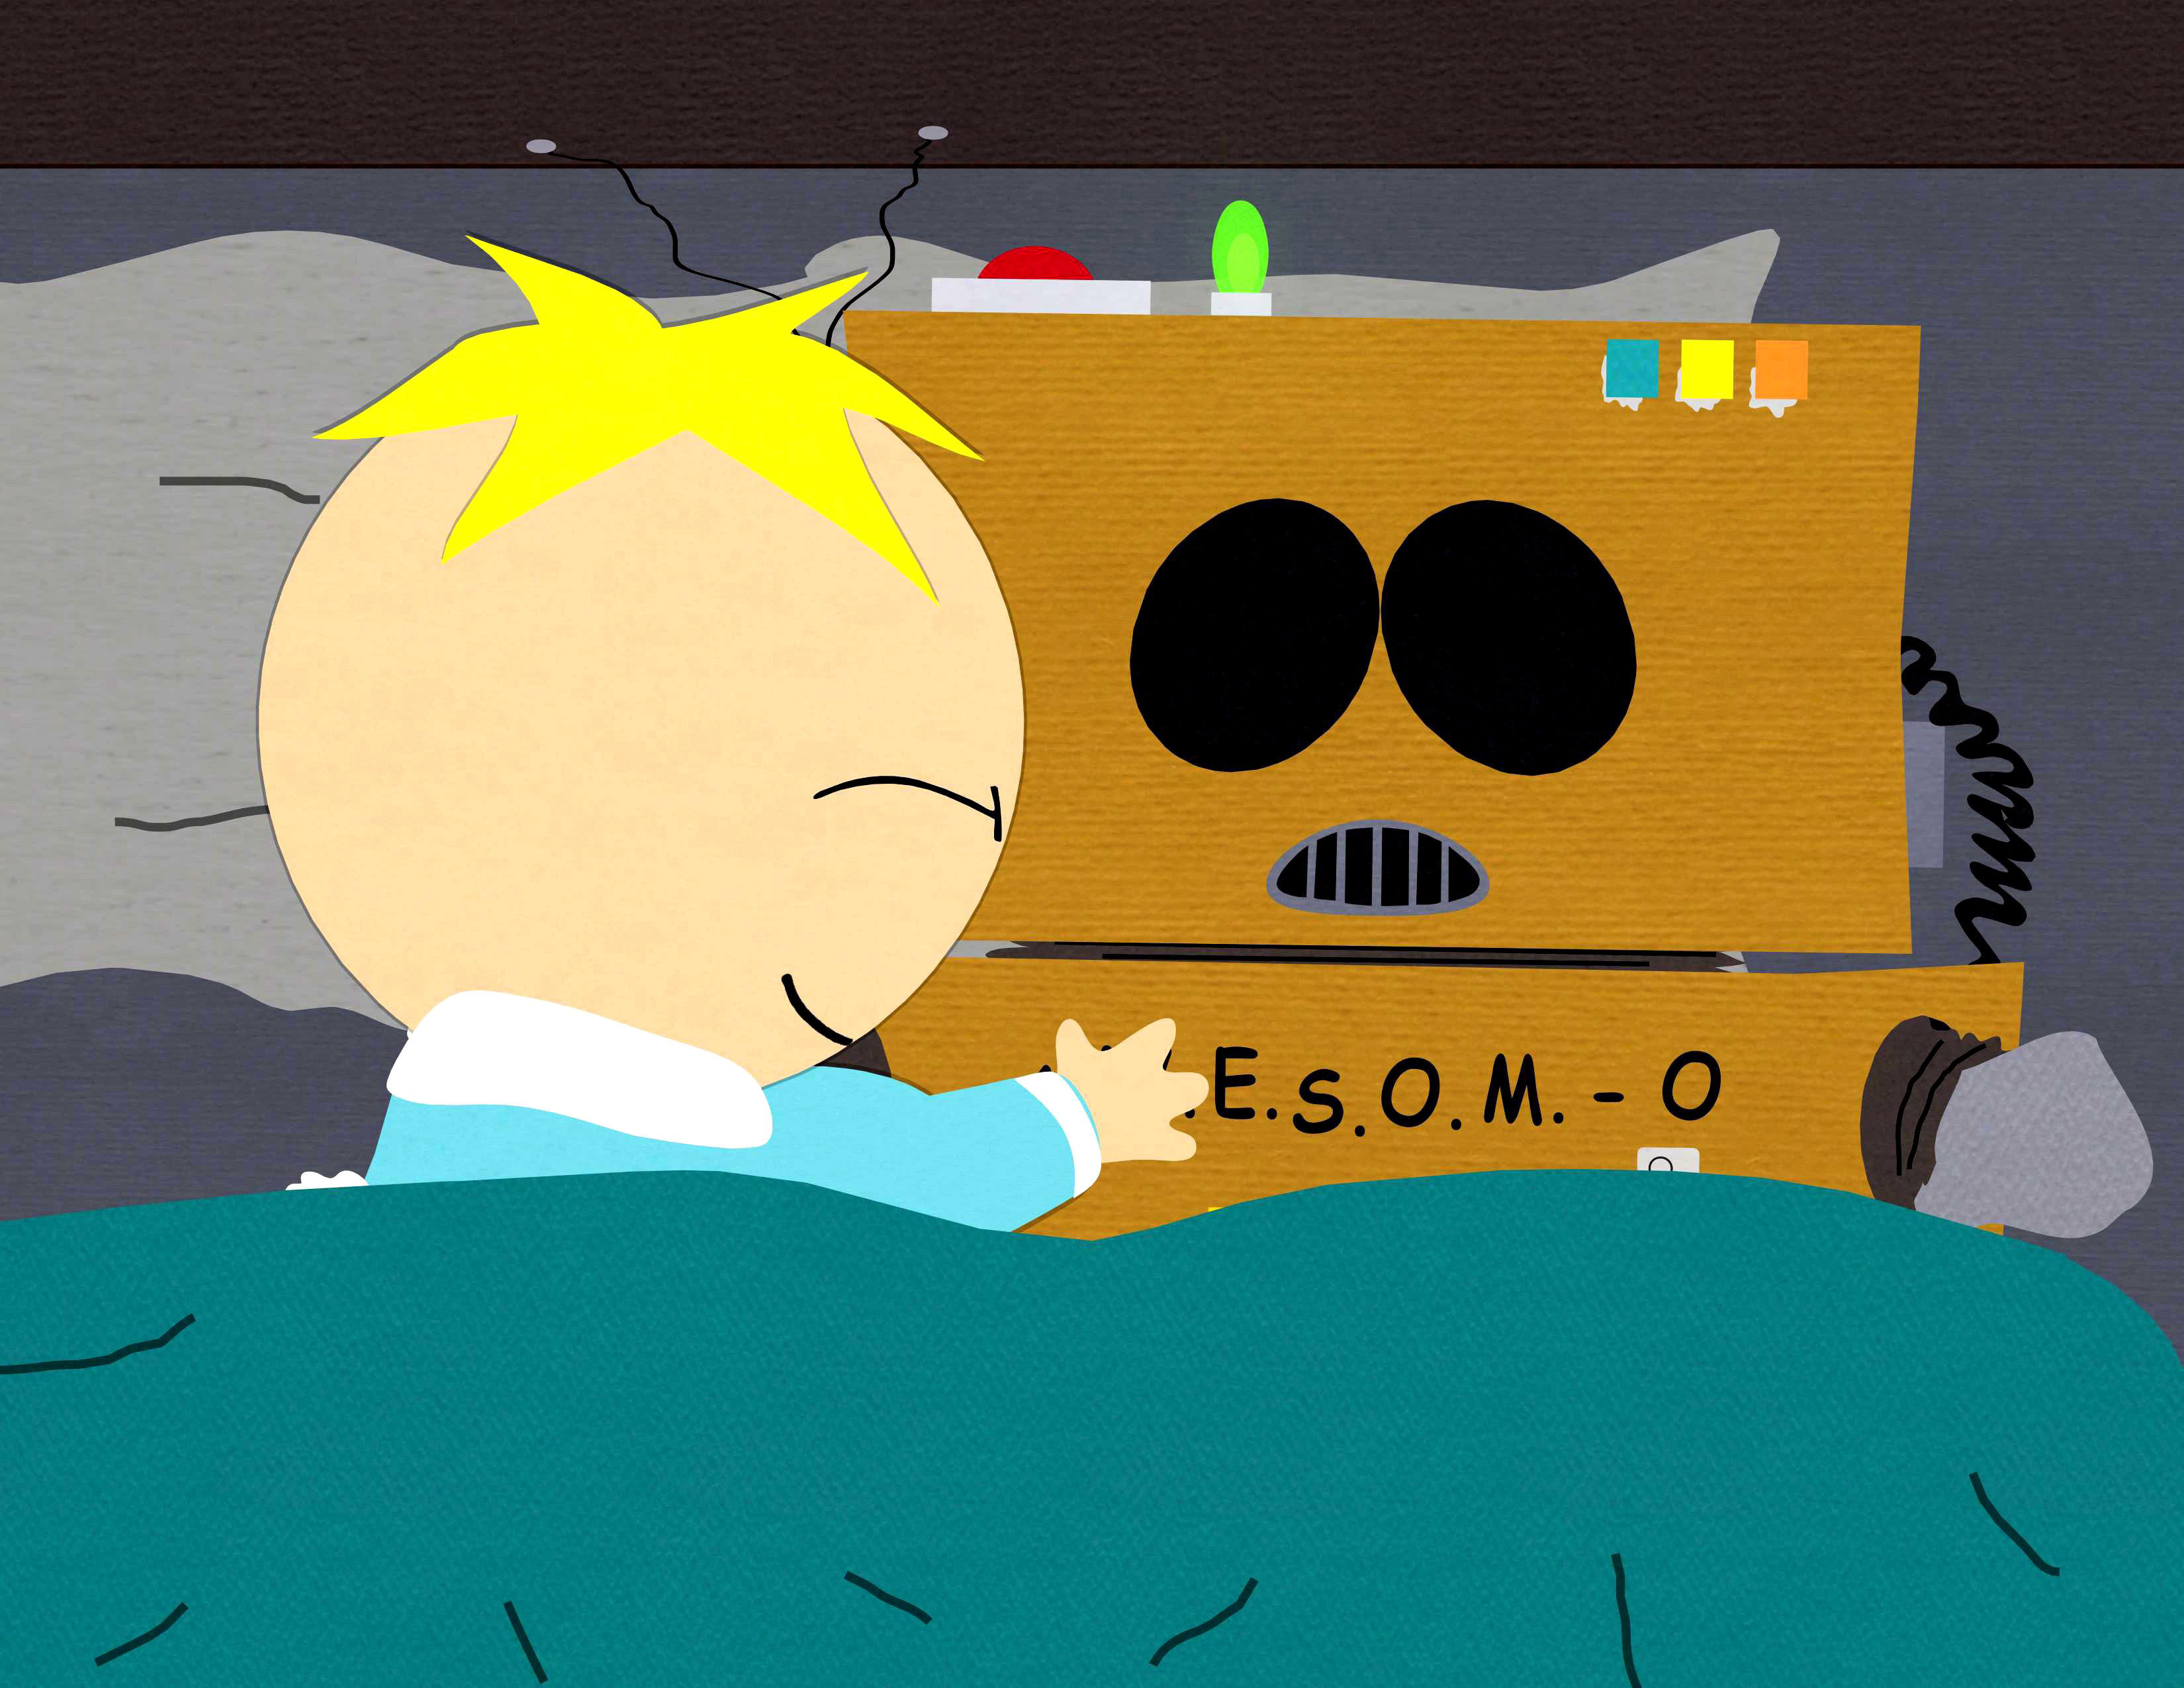 Oh Awesome Ryan S Top 10 Episodes Of South Park Reel Nerds Podcast